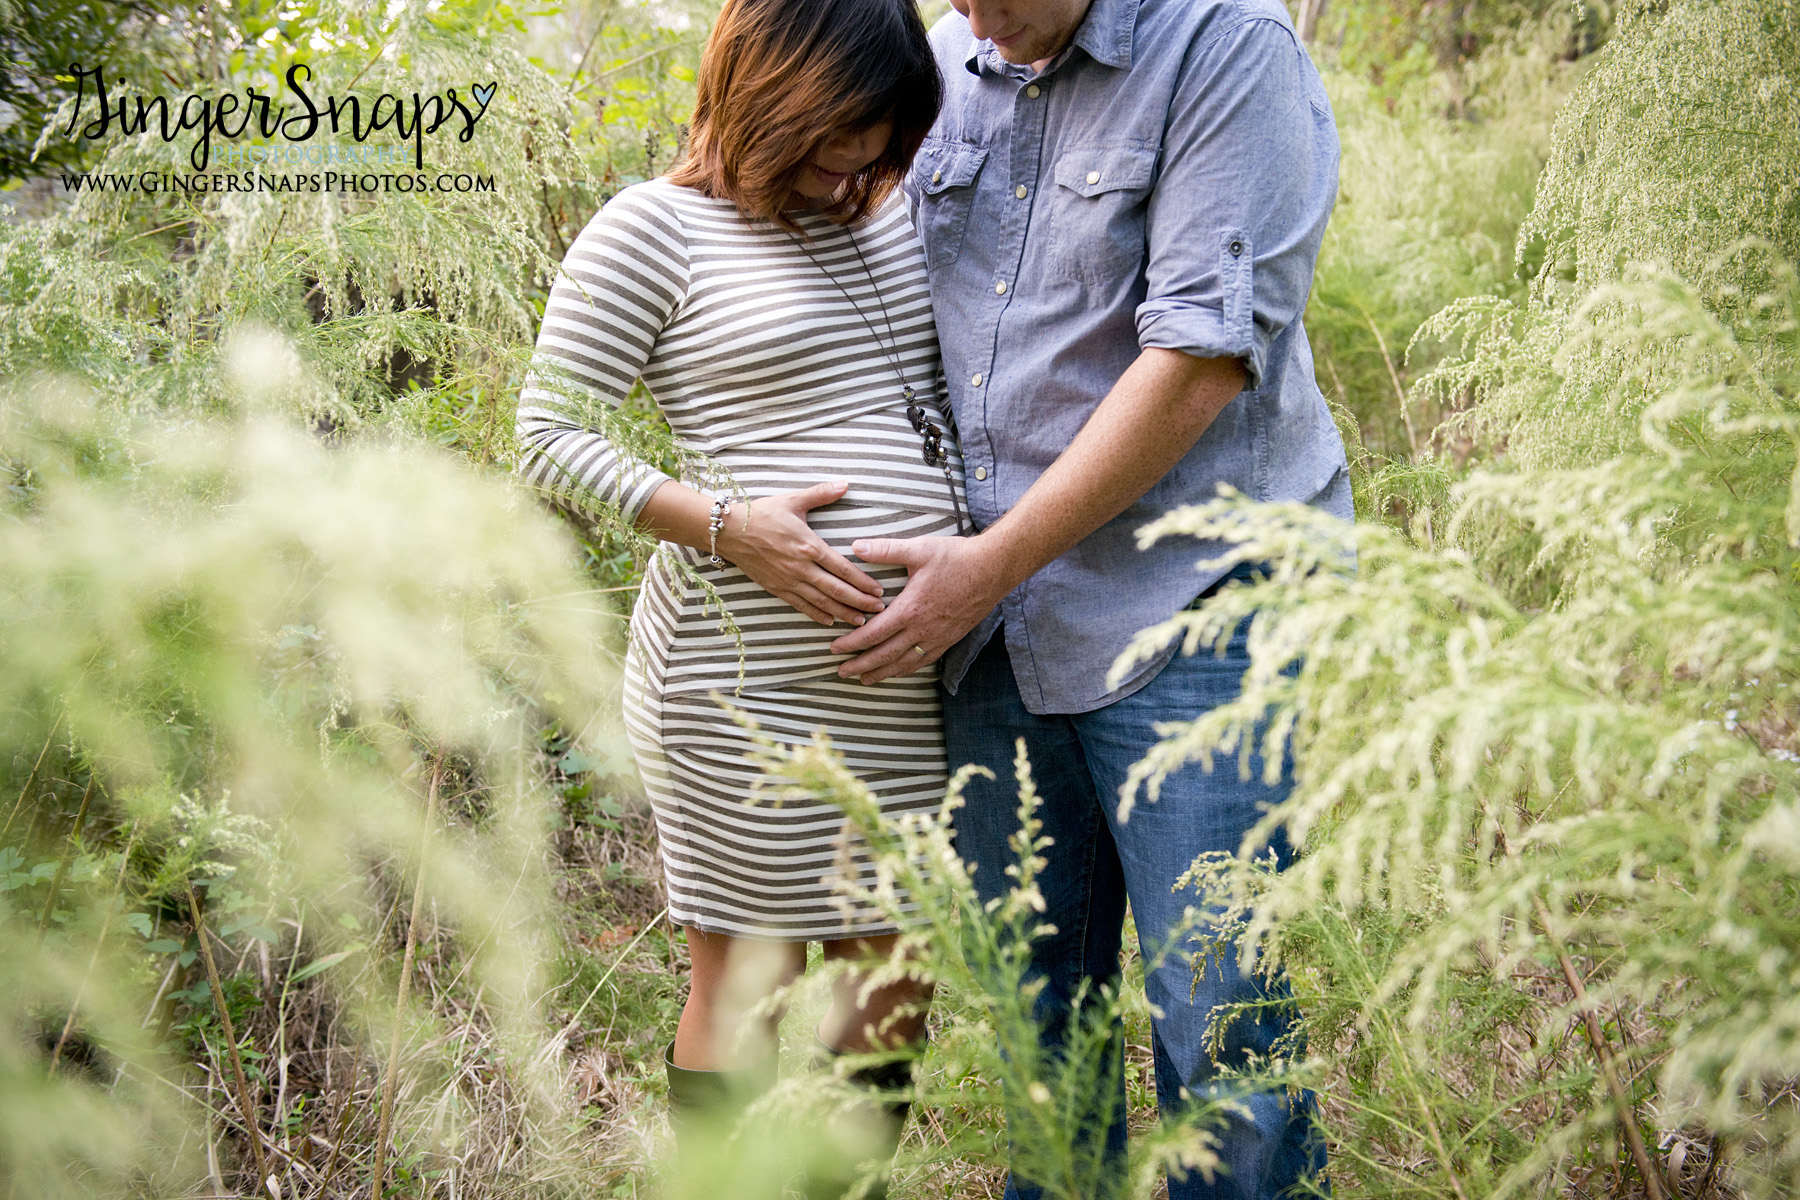 GingerSnaps Photography - 47